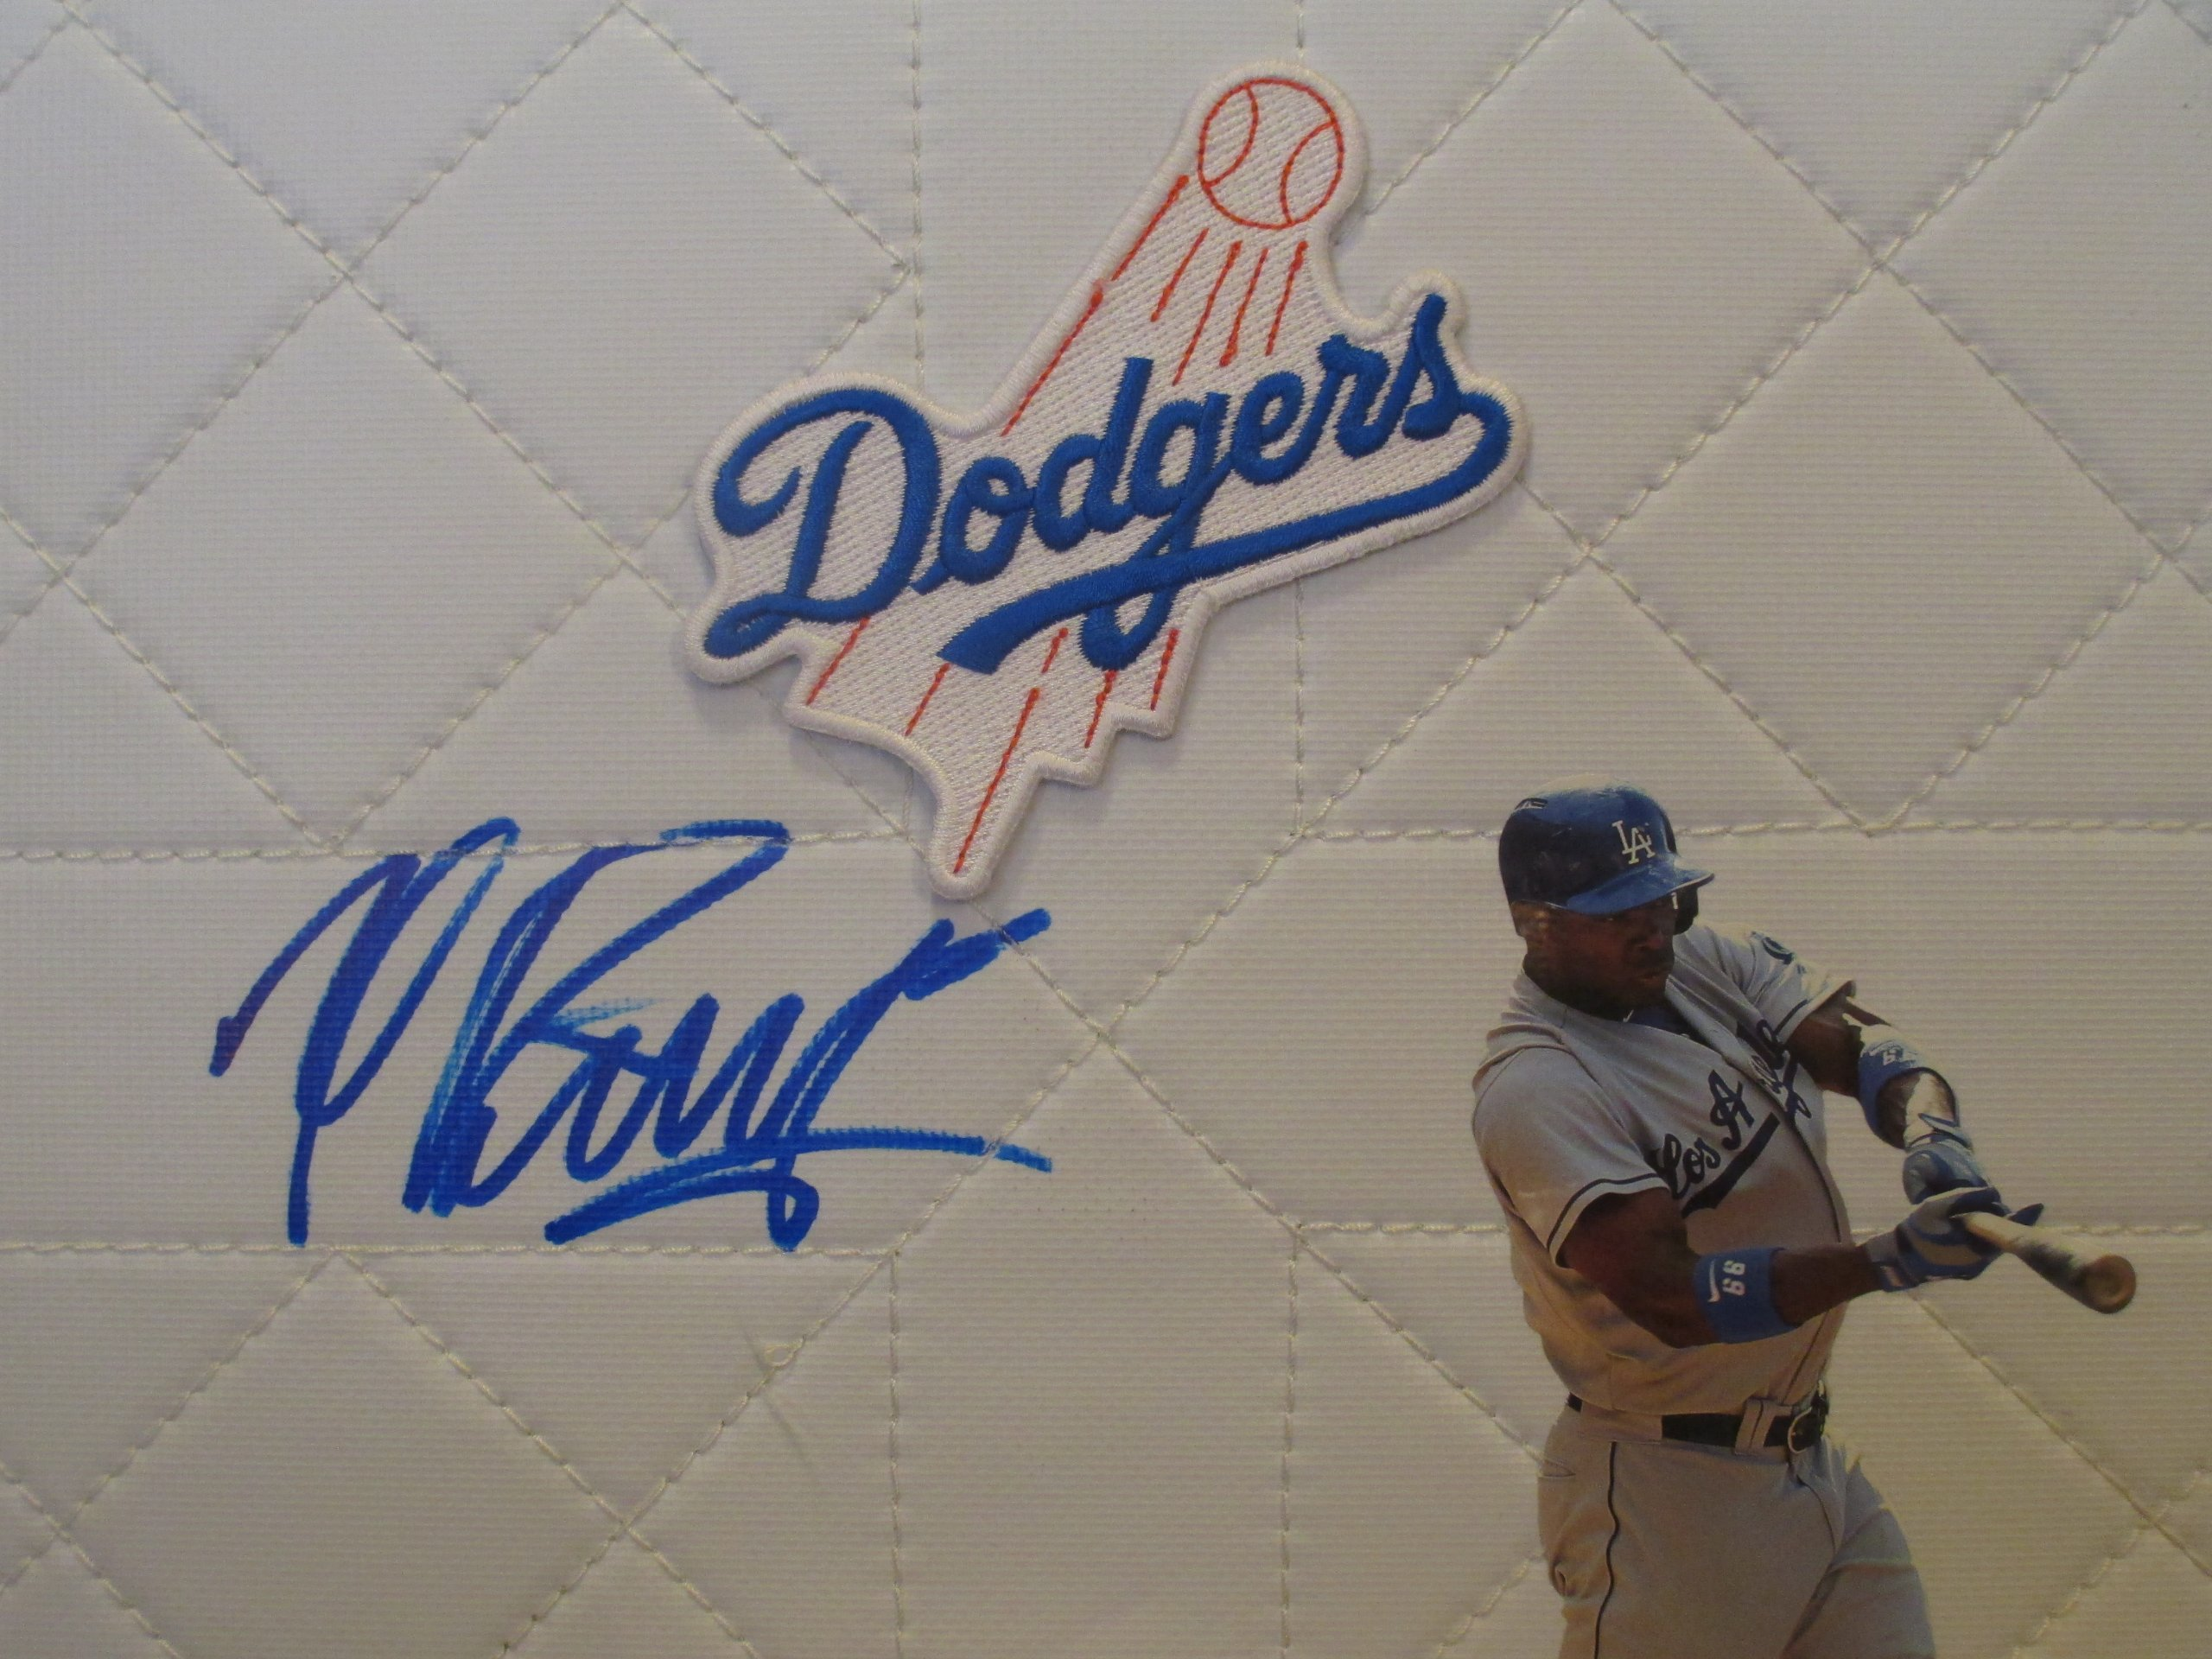 Los Angeles Dodgers Yasiel Puig Autographed Hand Signed LA Dodgers Full Size Baseball Photo Base with Proof Photo of Signing and COA